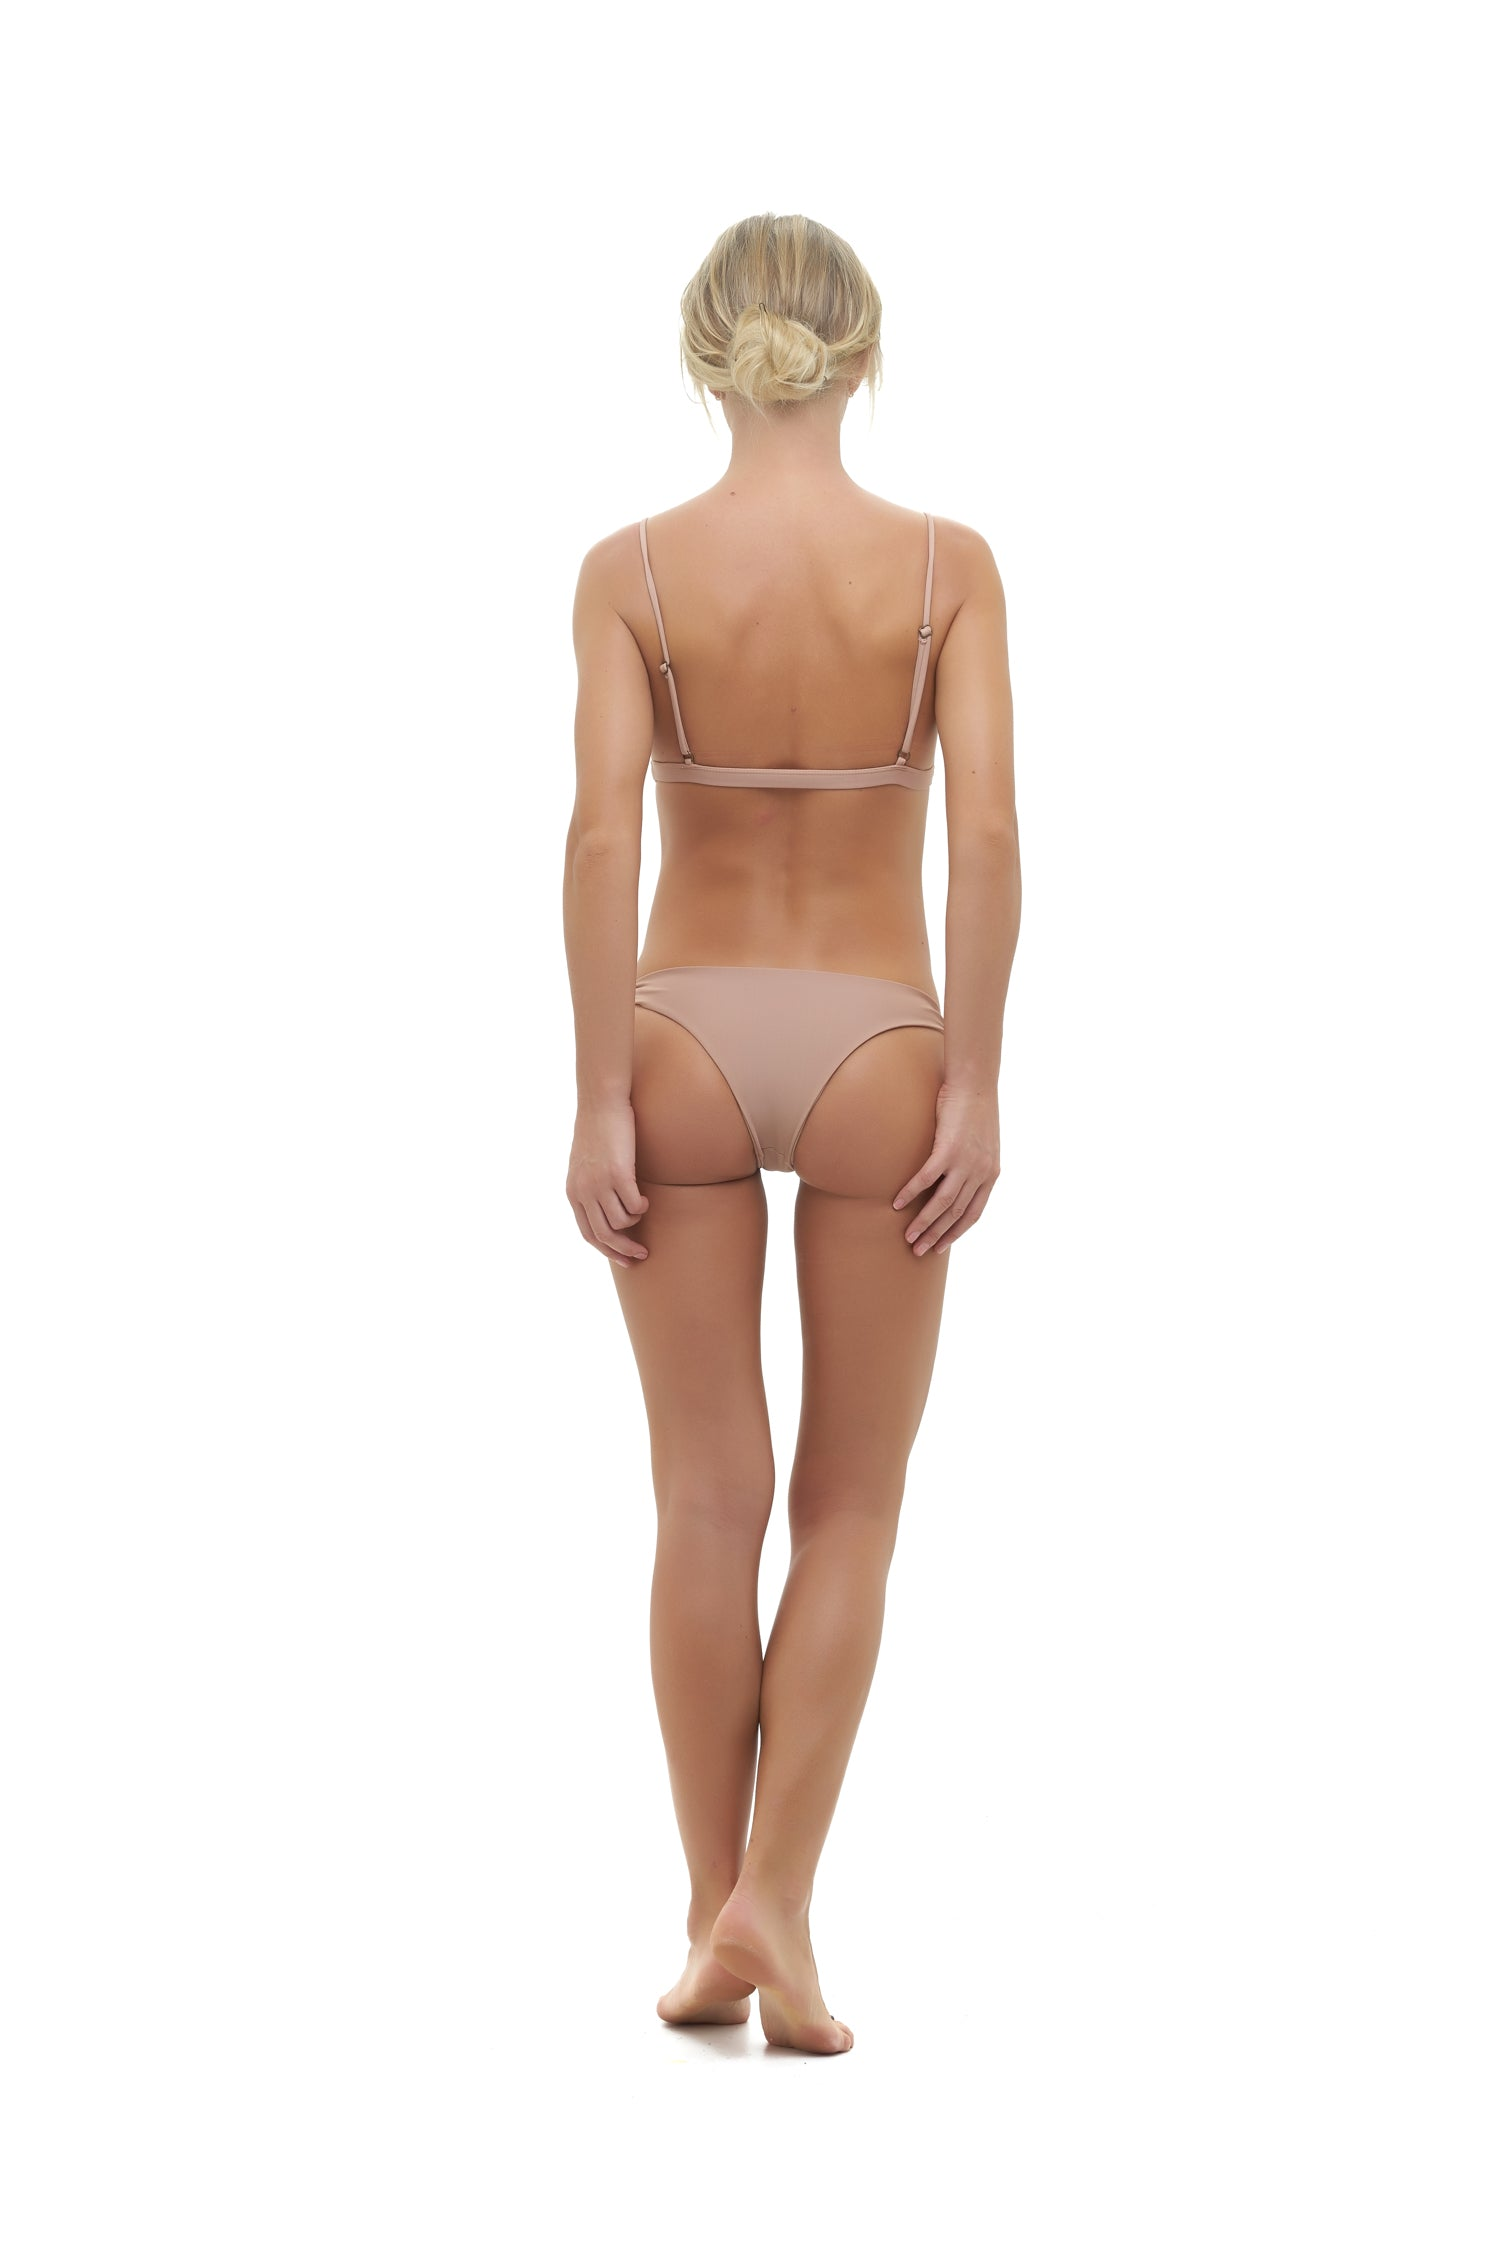 Storm Swimwear - Barbados - Tie knot Side Bikini Bottoms in Nude